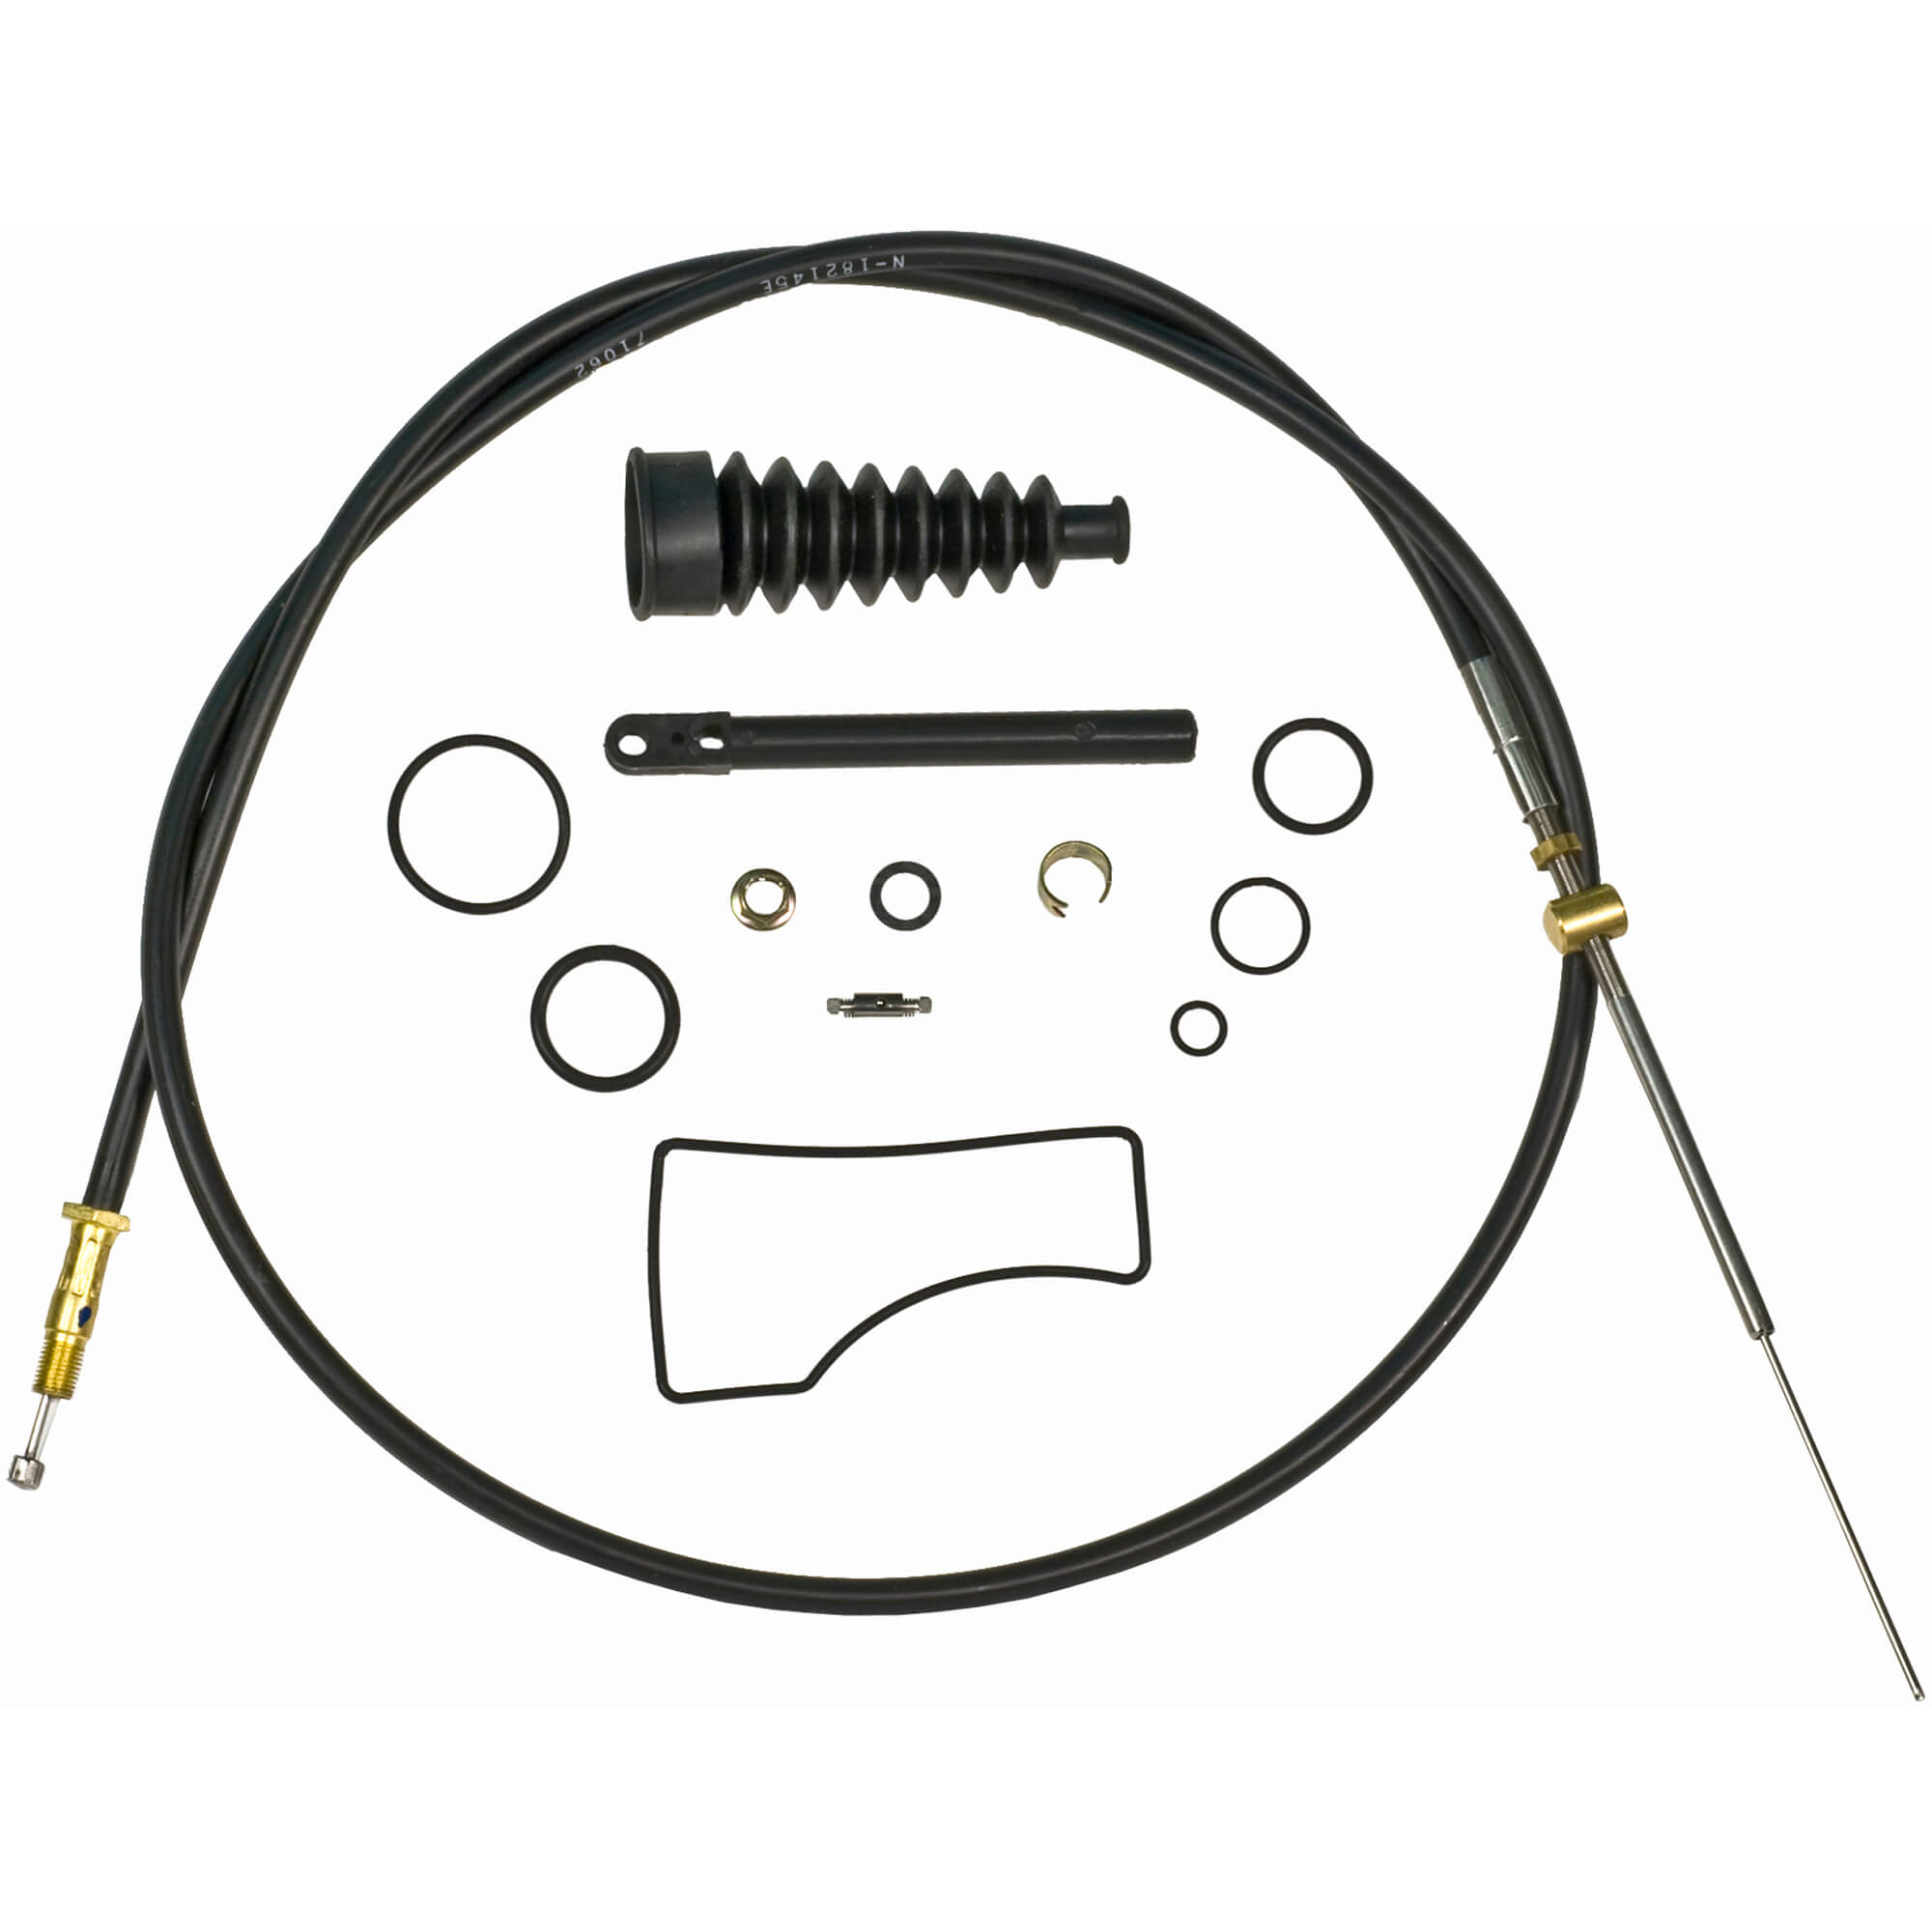 III Mercruiser Bravo lower Shift Cable Assembly Kit 21453 815471T1 Bravo I II